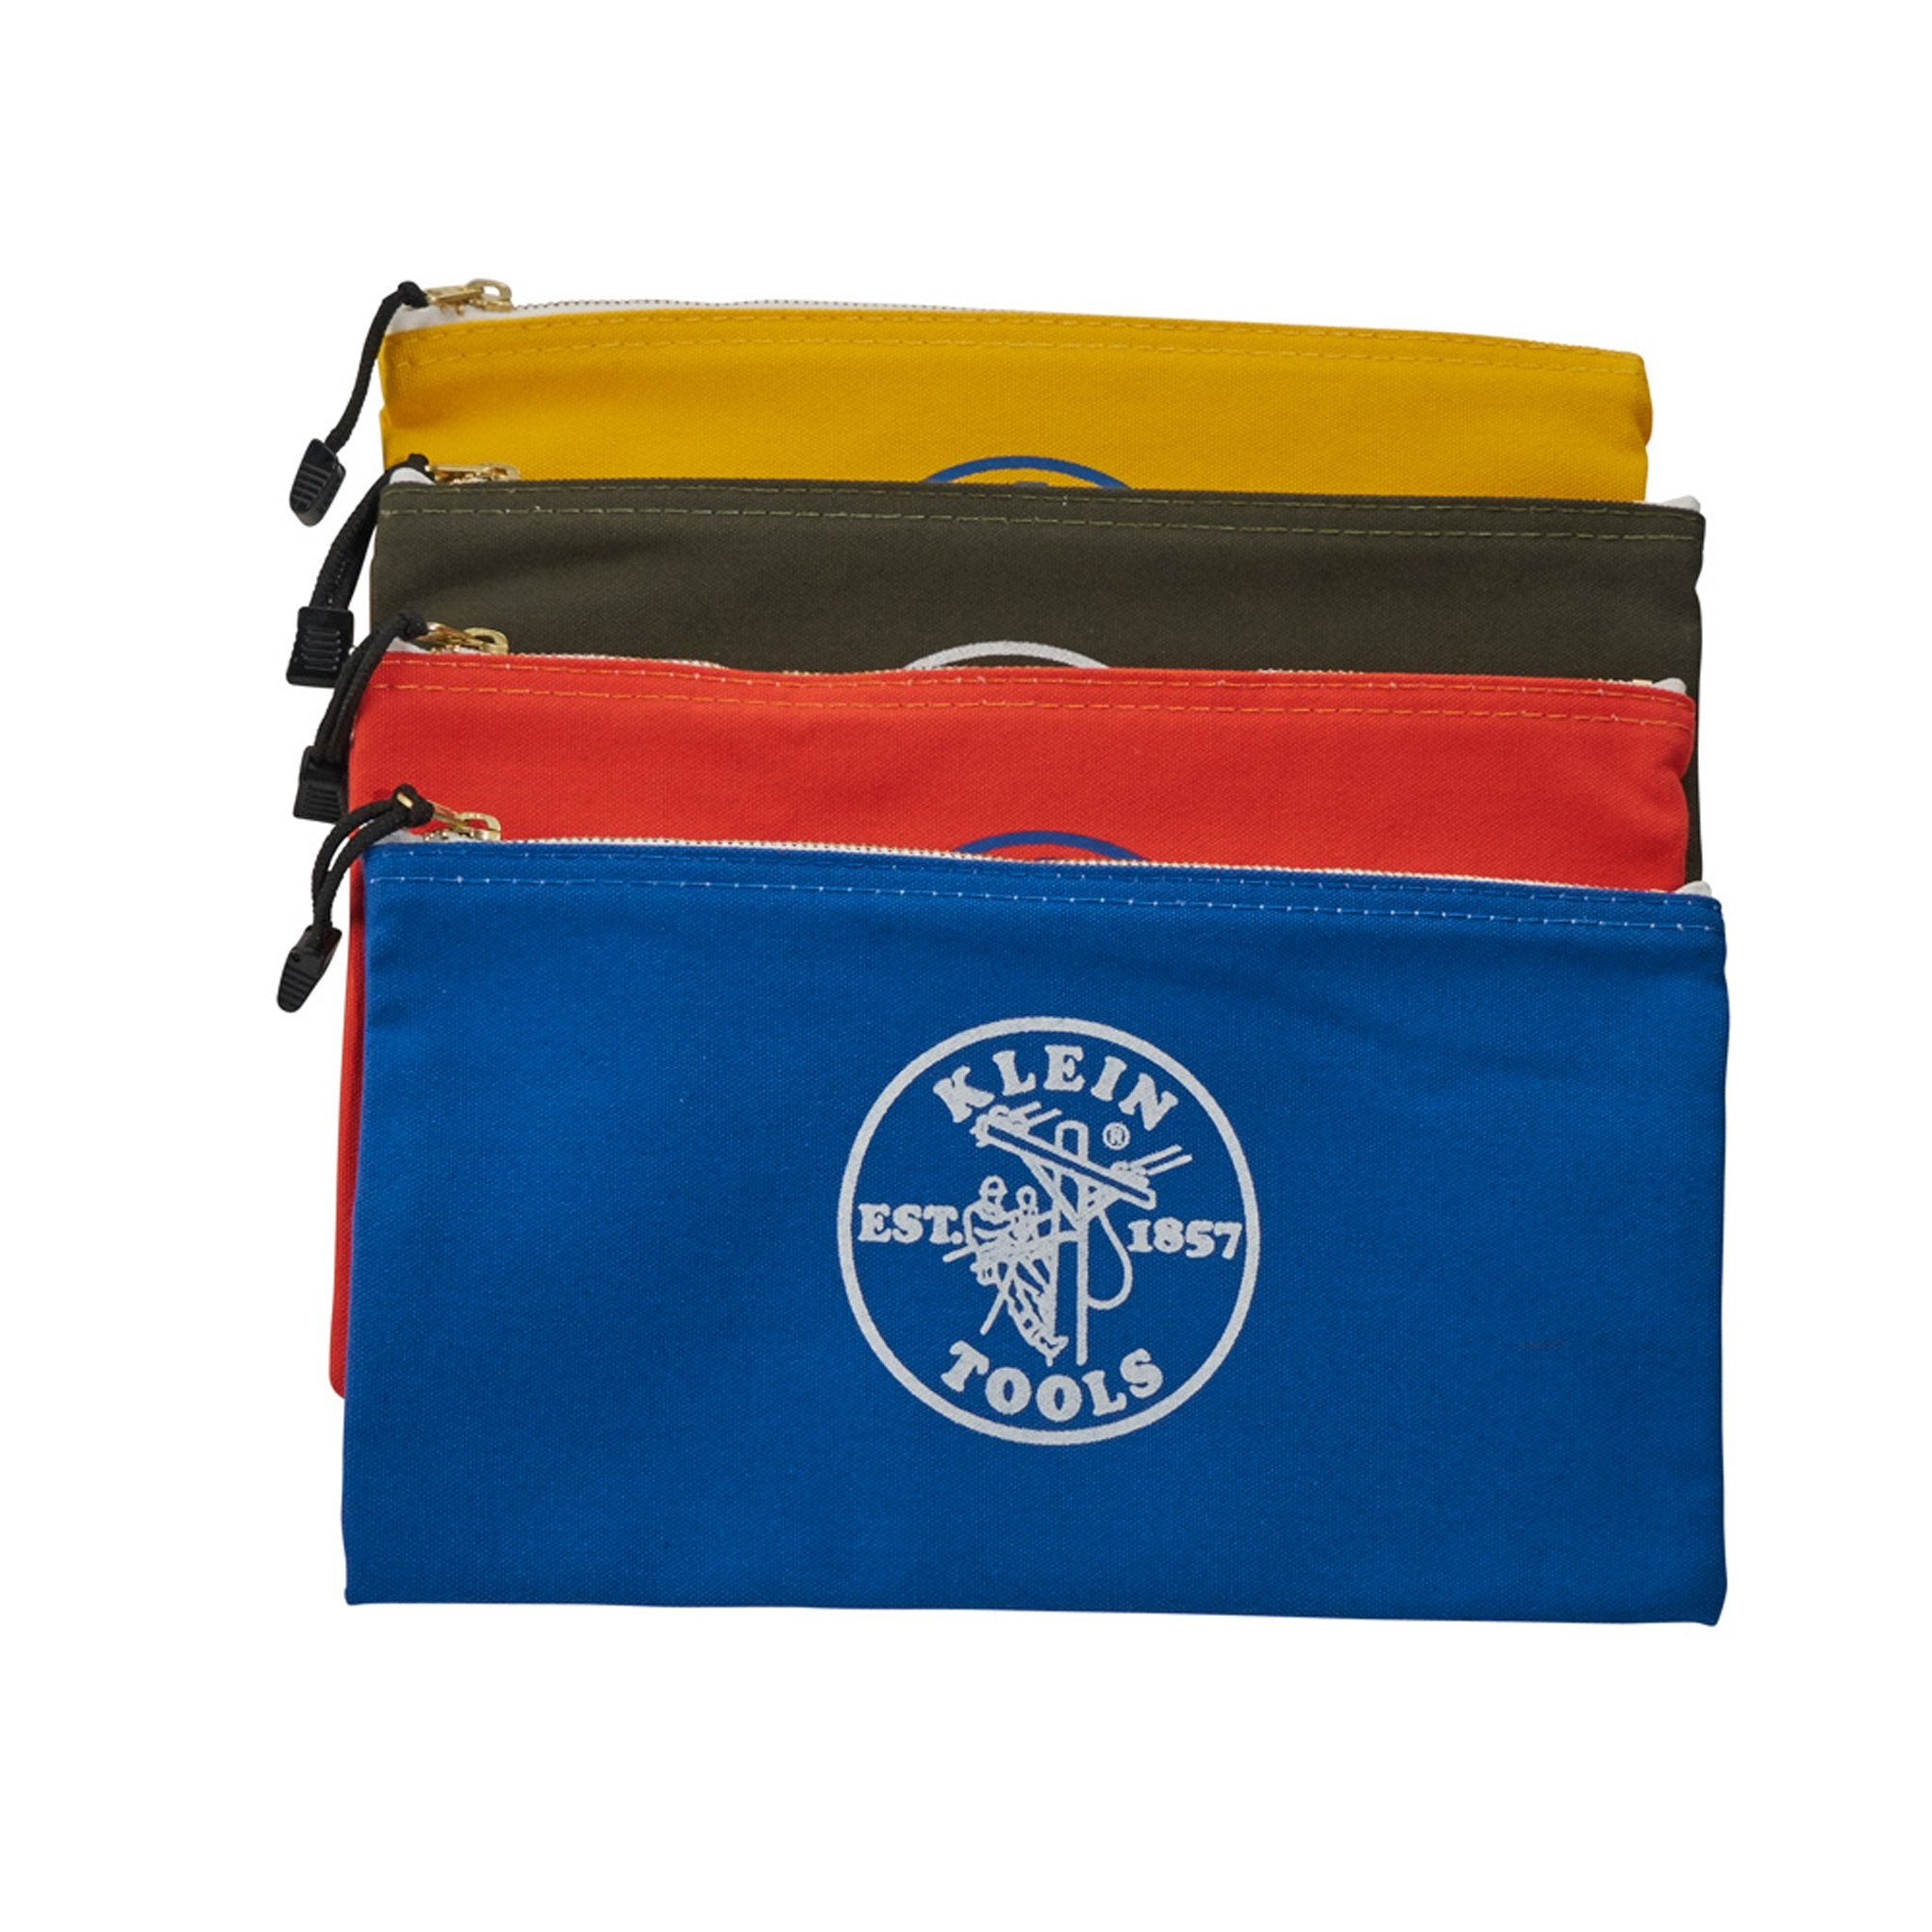 Klein Zipper Bag - Arthur Beale